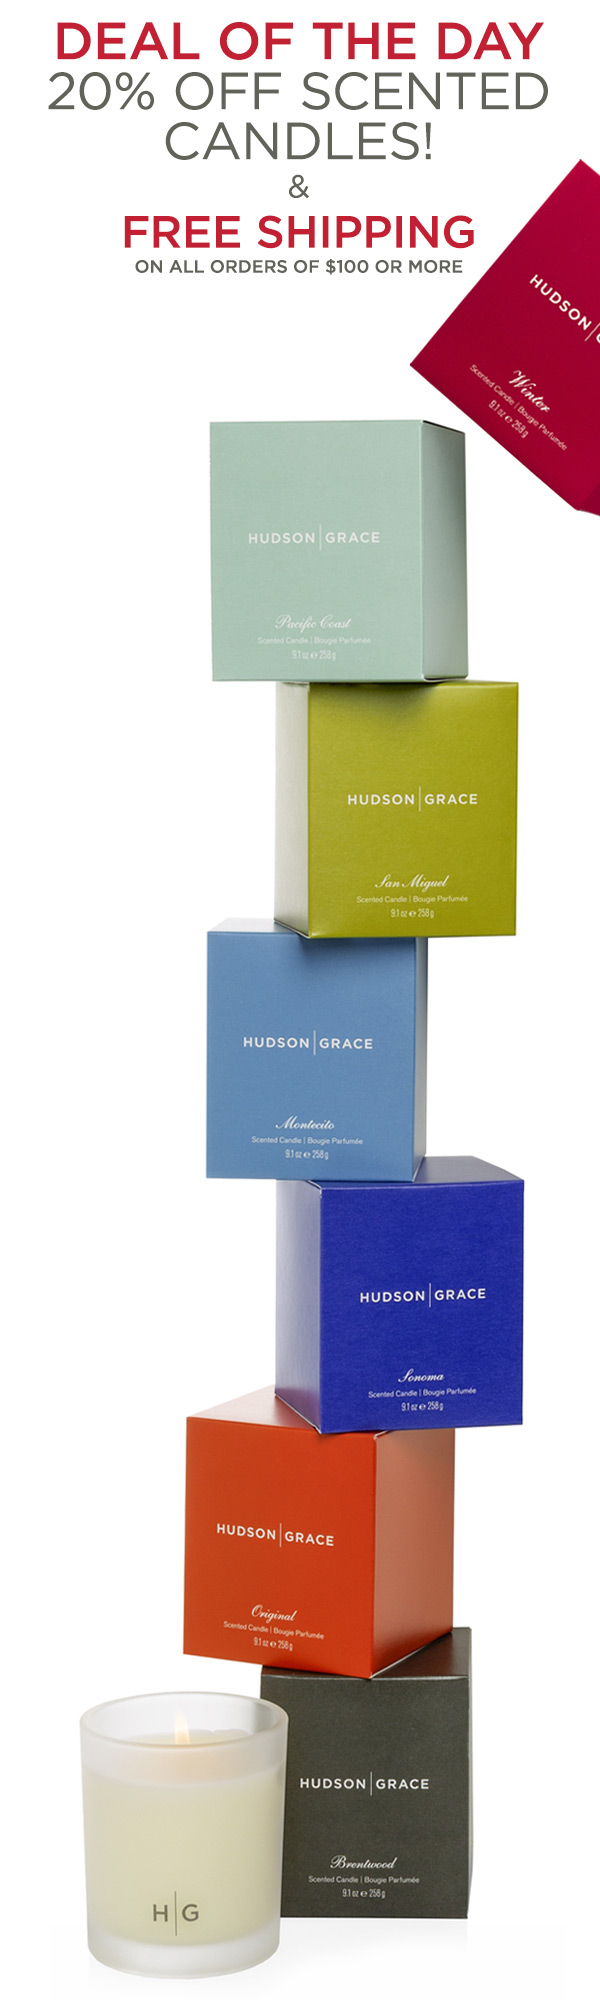 Deal of the day - 20% off Scented Candles! And Free Shipping on all orders of $100.